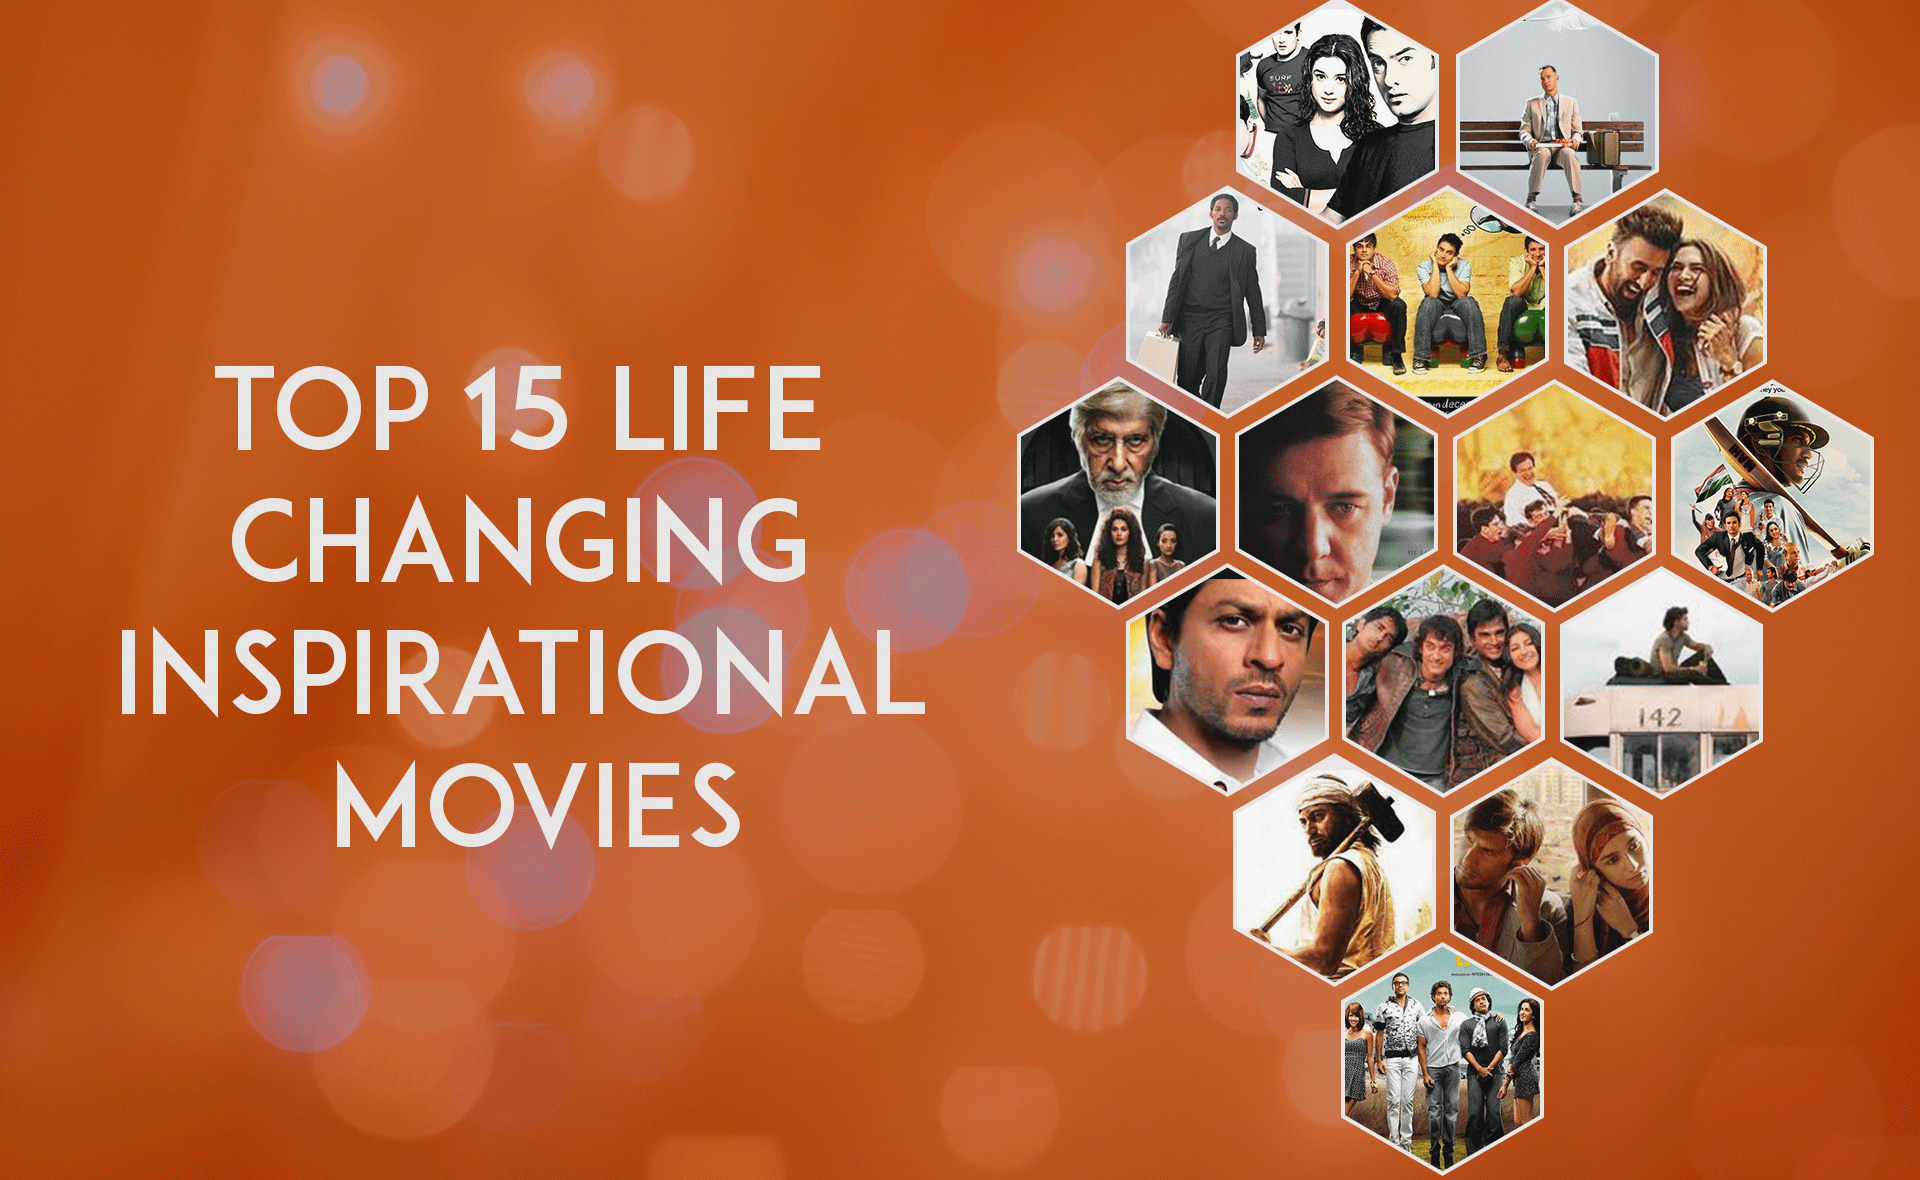 TOP 15 LIFE CHANGING INSPIRATIONAL MOVIES – We Are The Writers